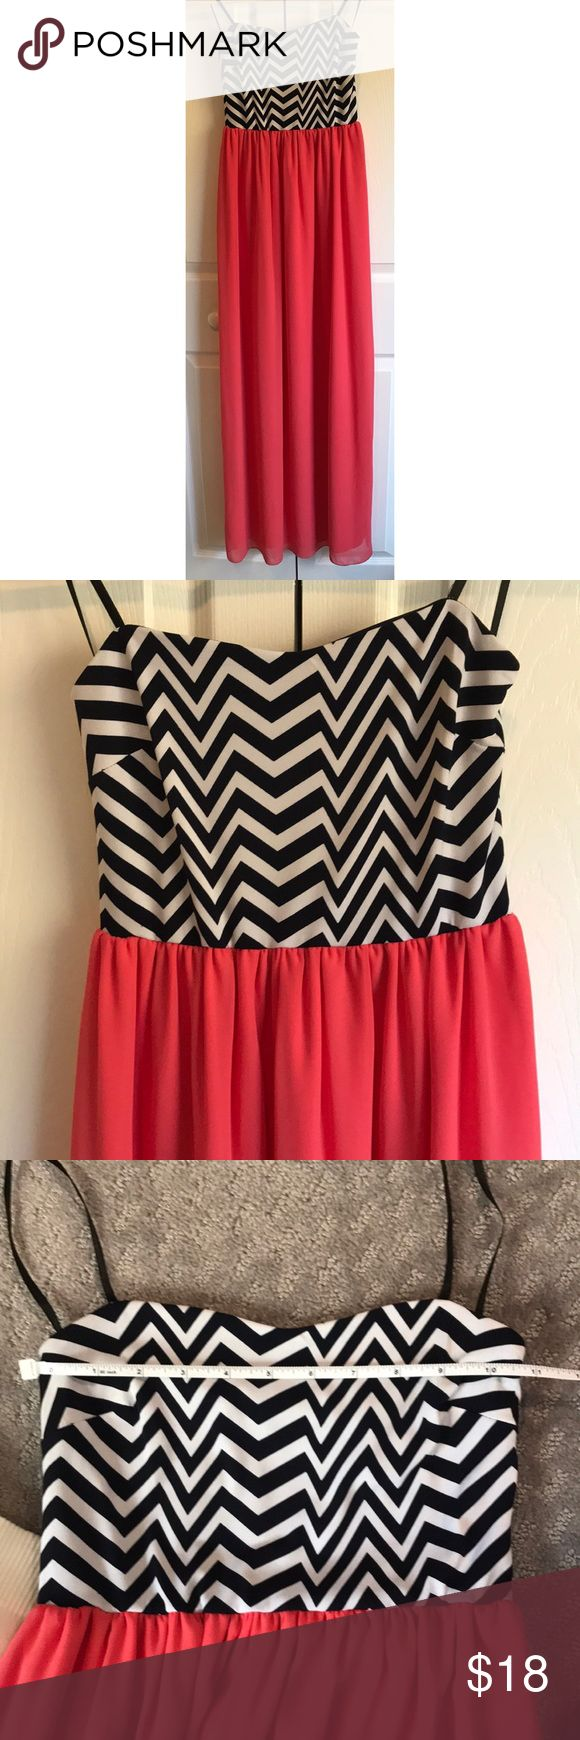 Strapless Chevron Coral Maxi Dress Super cute and bright colors. No size tag but looks like an XS/S Navy and white chevron. Dresses Maxi